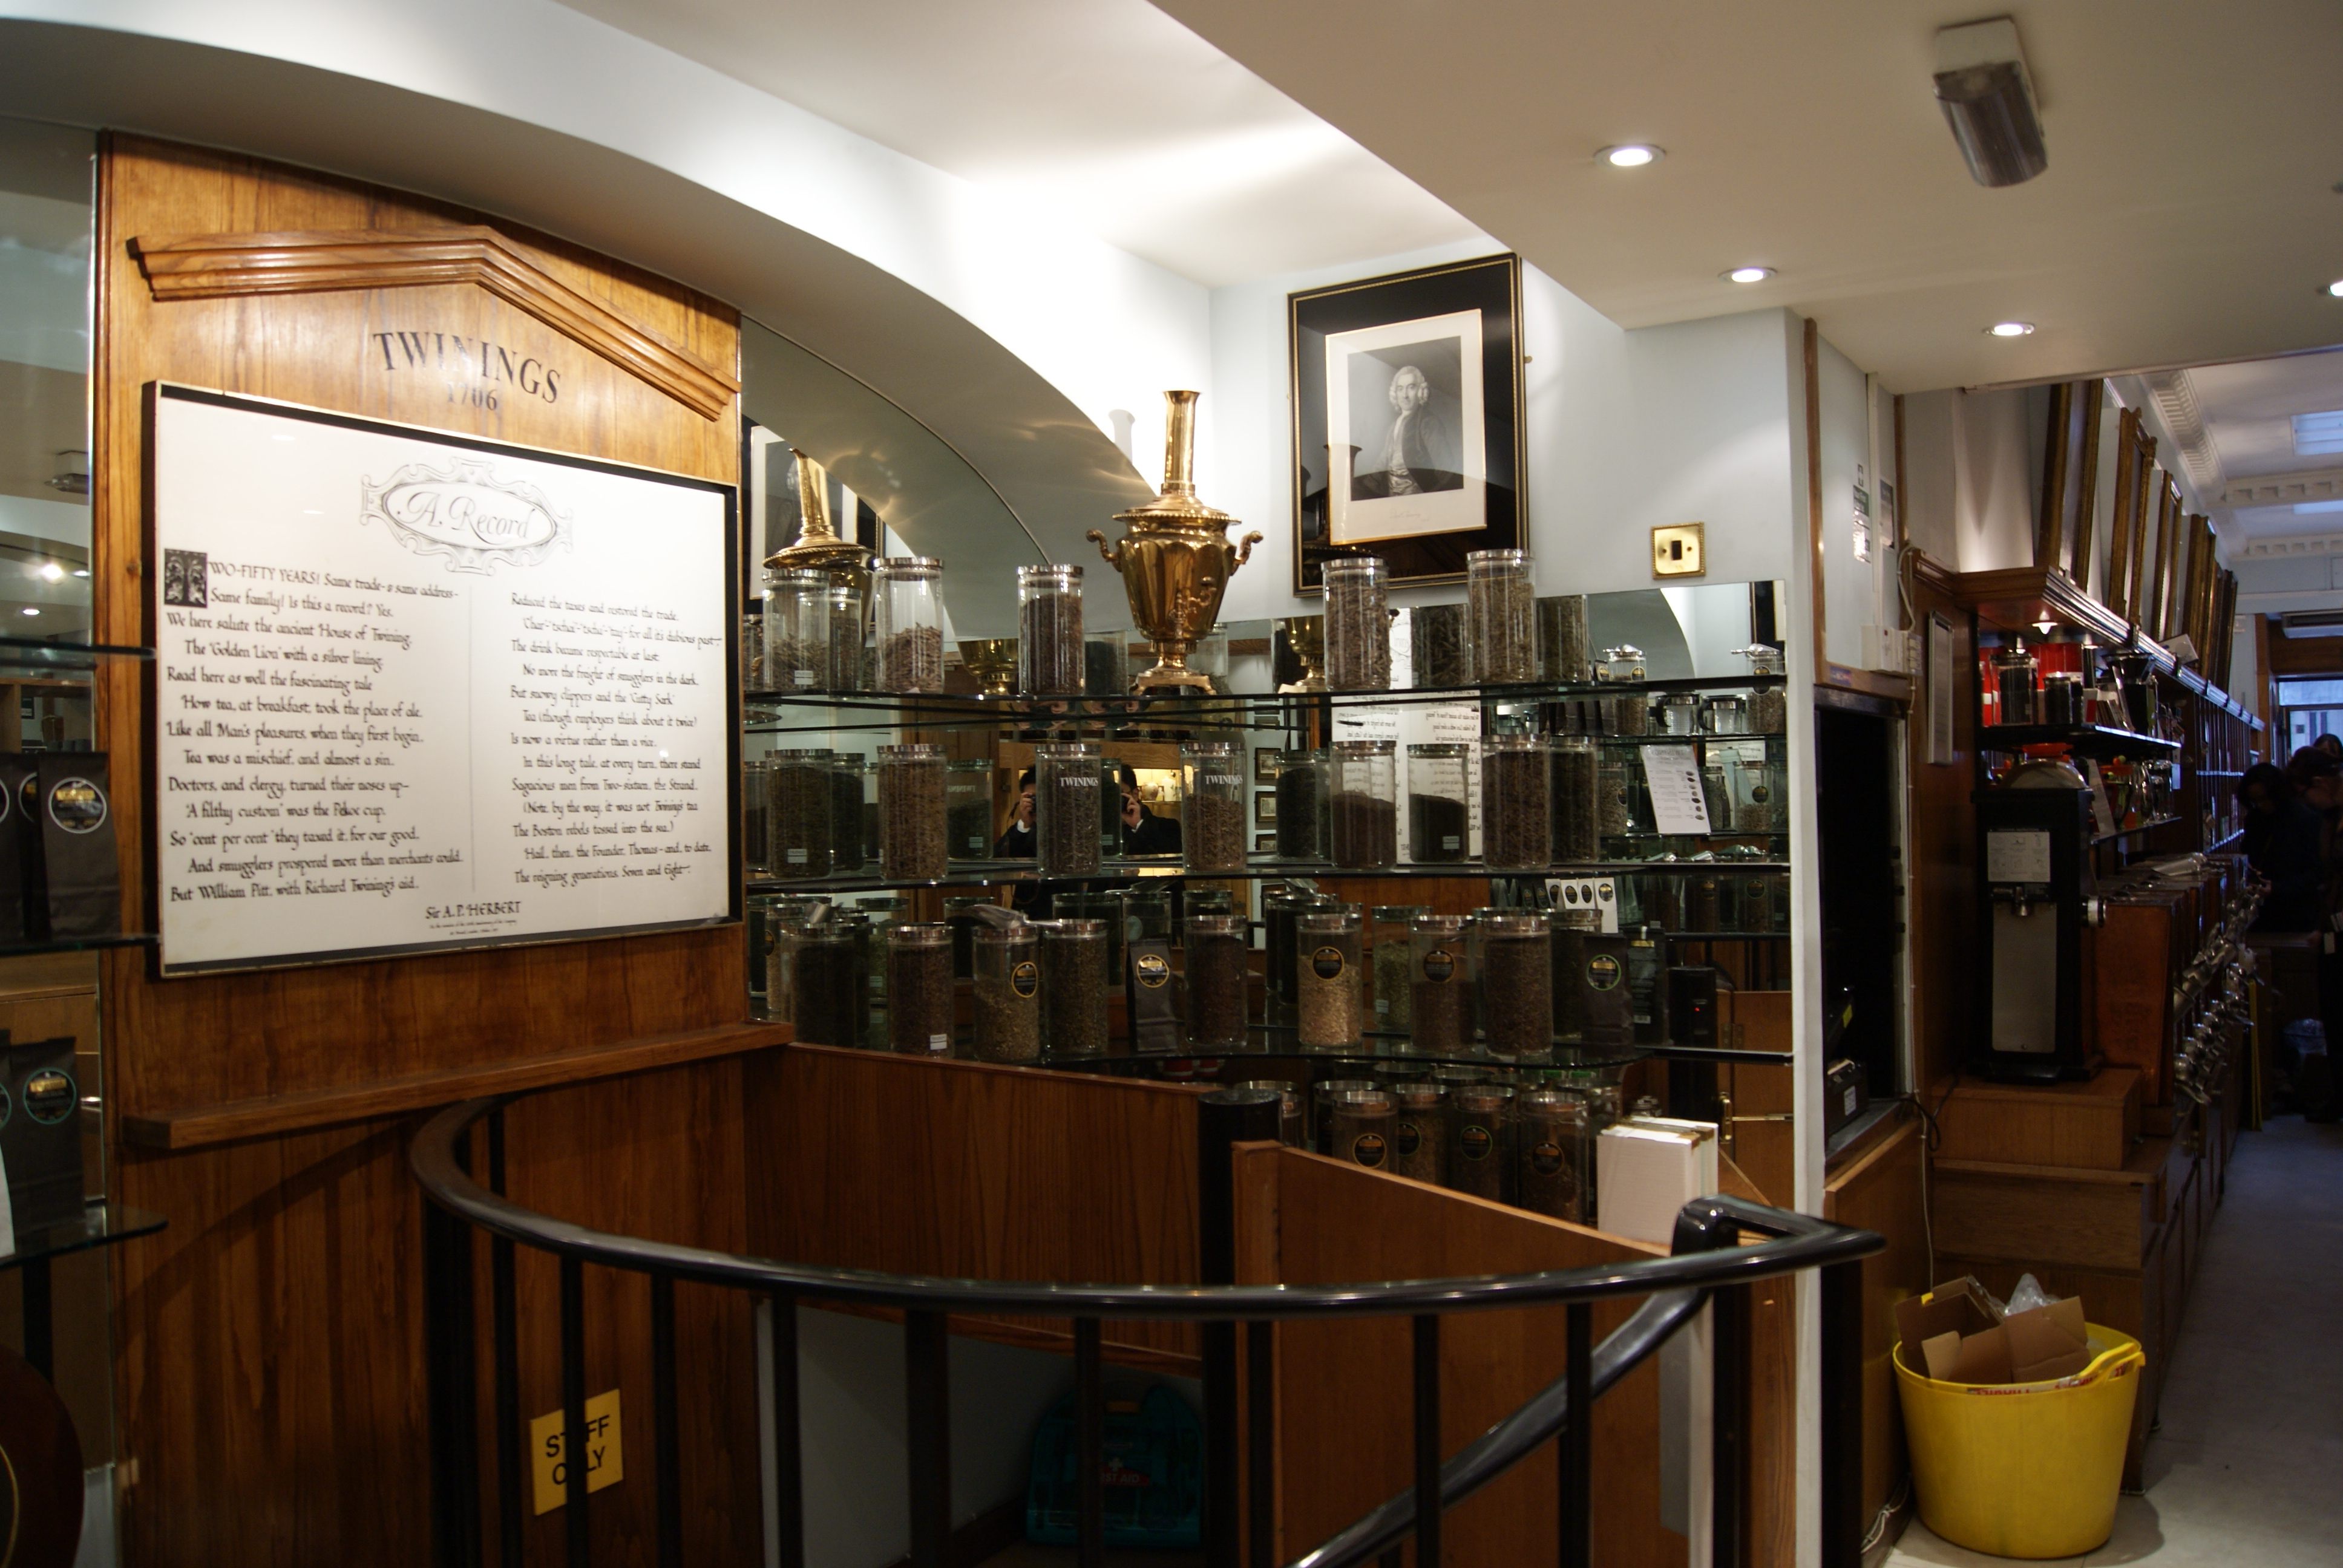 FileInterior Of The Twinings Strand Heritage Shop London